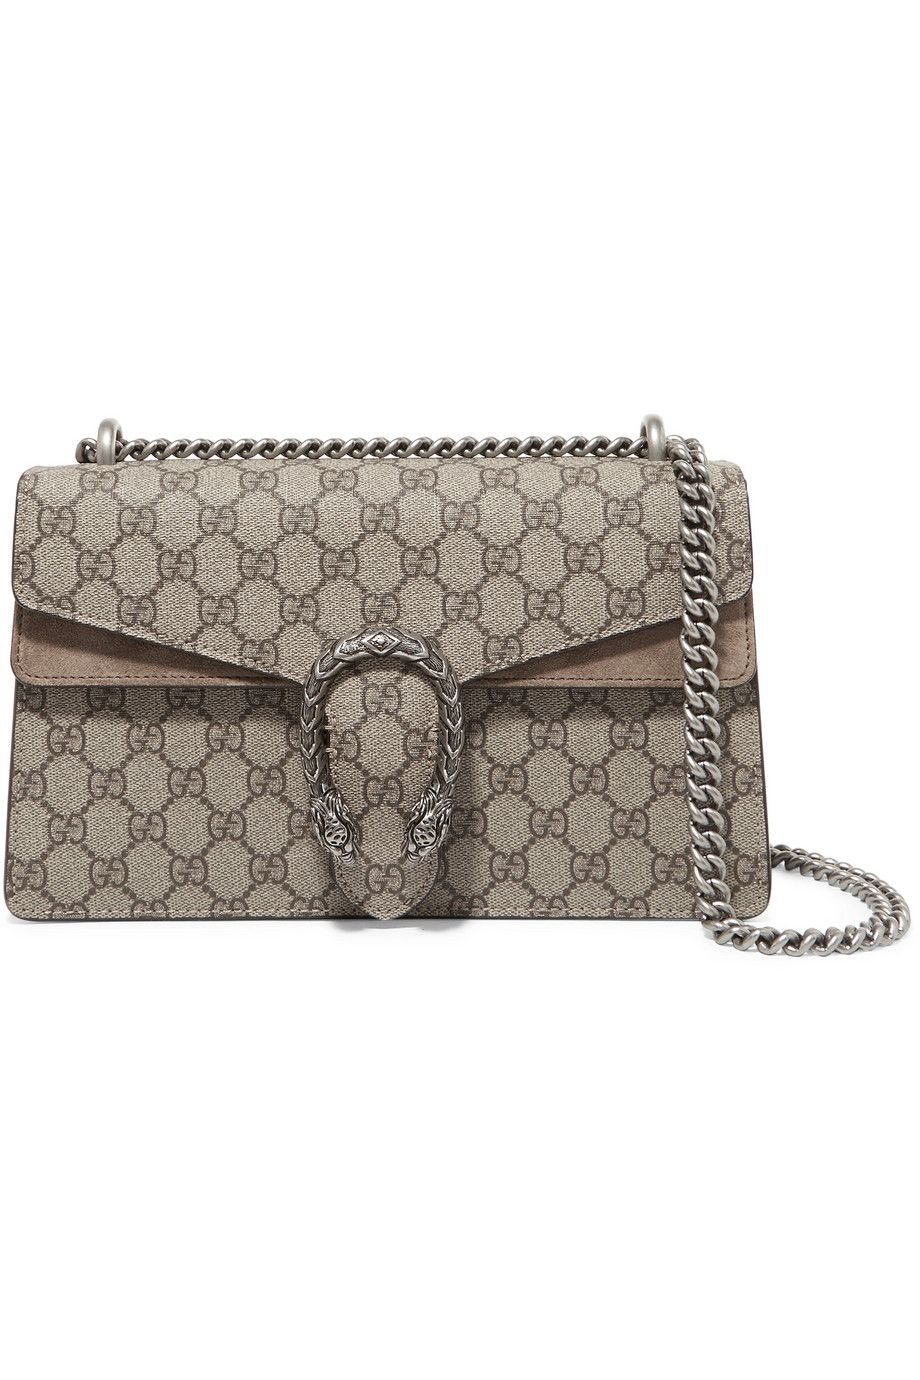 d496dbc4a37c Gucci   Dionysus small coated-canvas and suede shoulder bag    NET-A-PORTER.COM